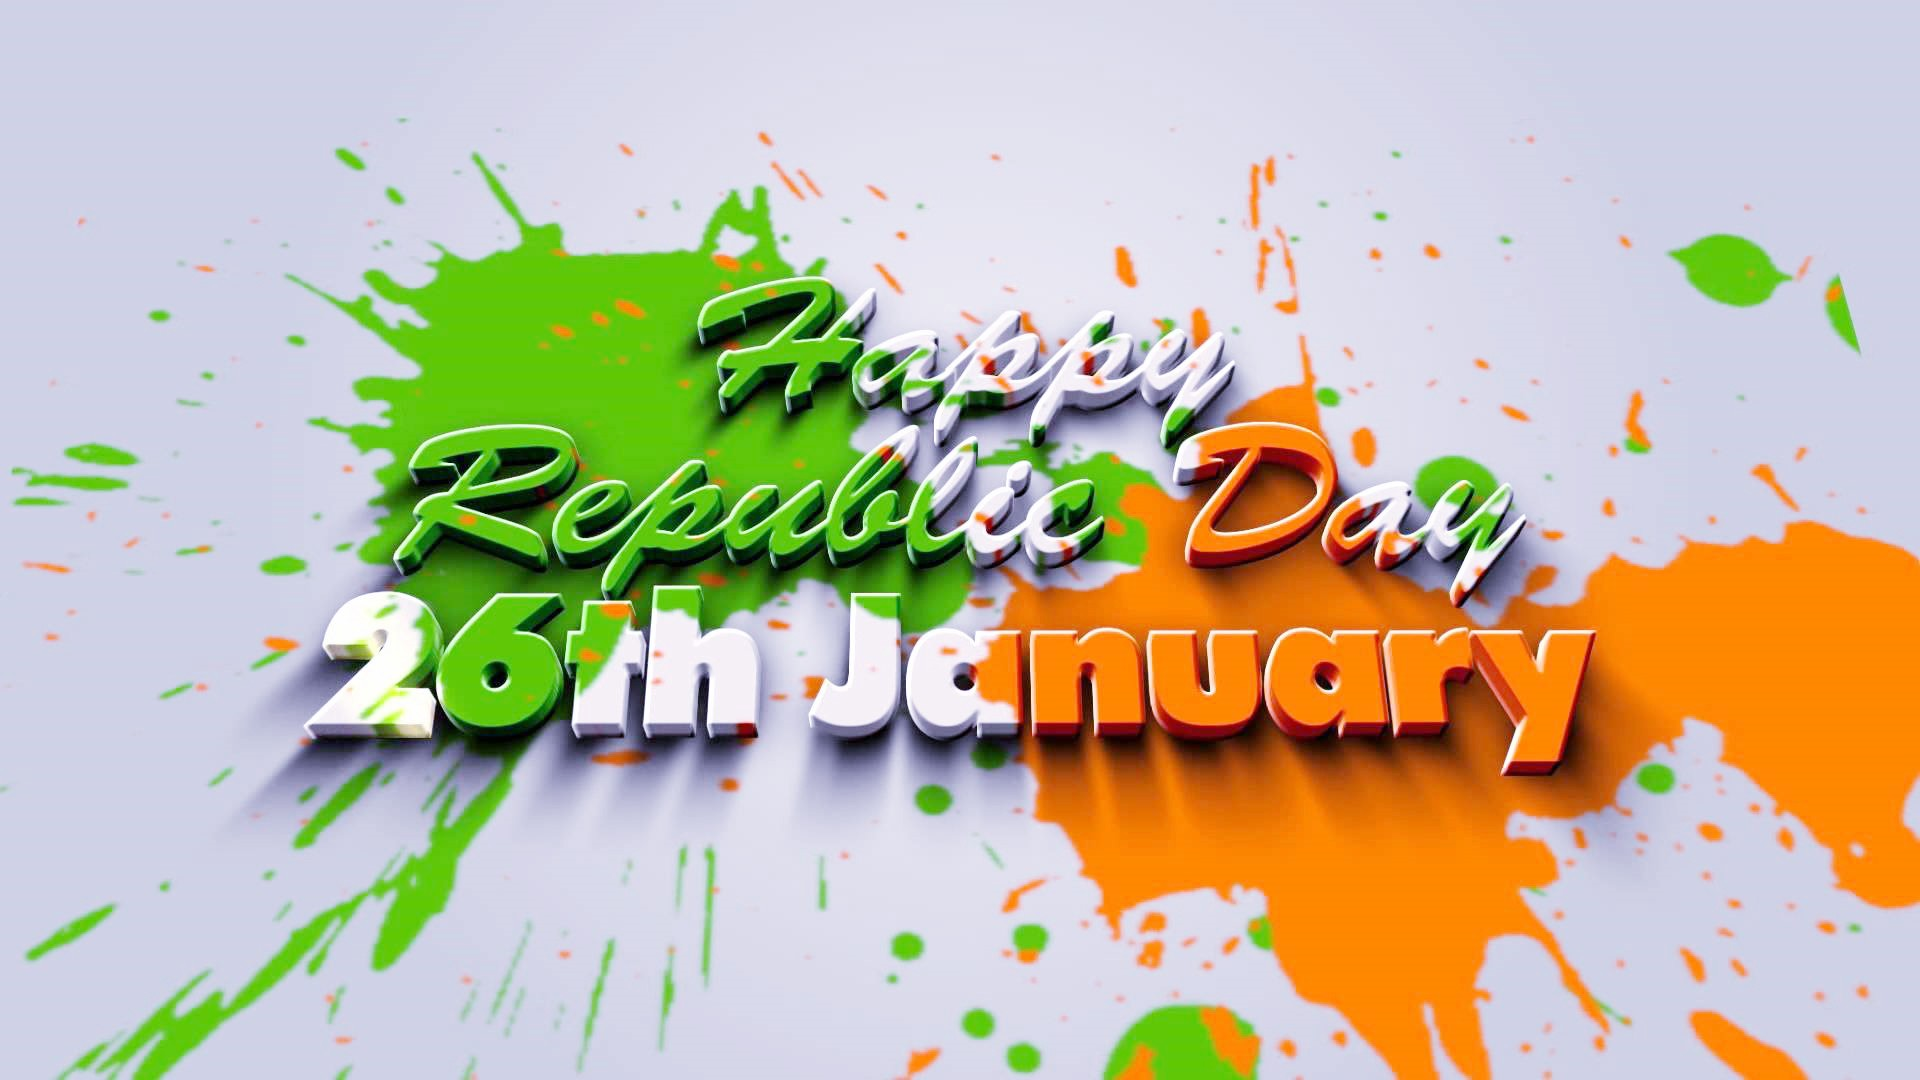 Happy Republic Day Whatsapp Profile pic